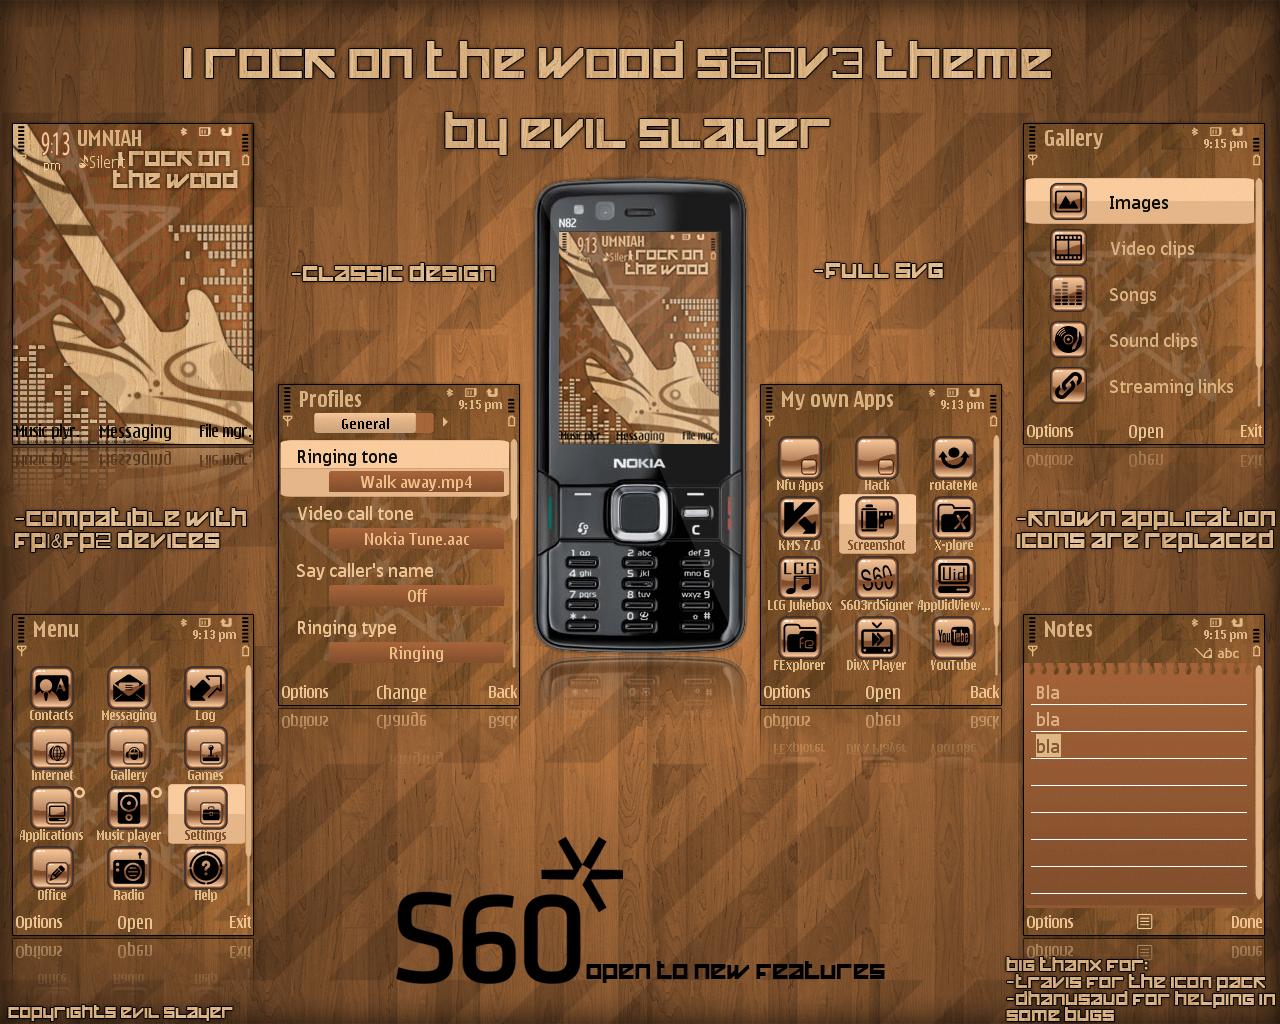 i_rock_on_the_wood_s60v3_by_evil_slayer